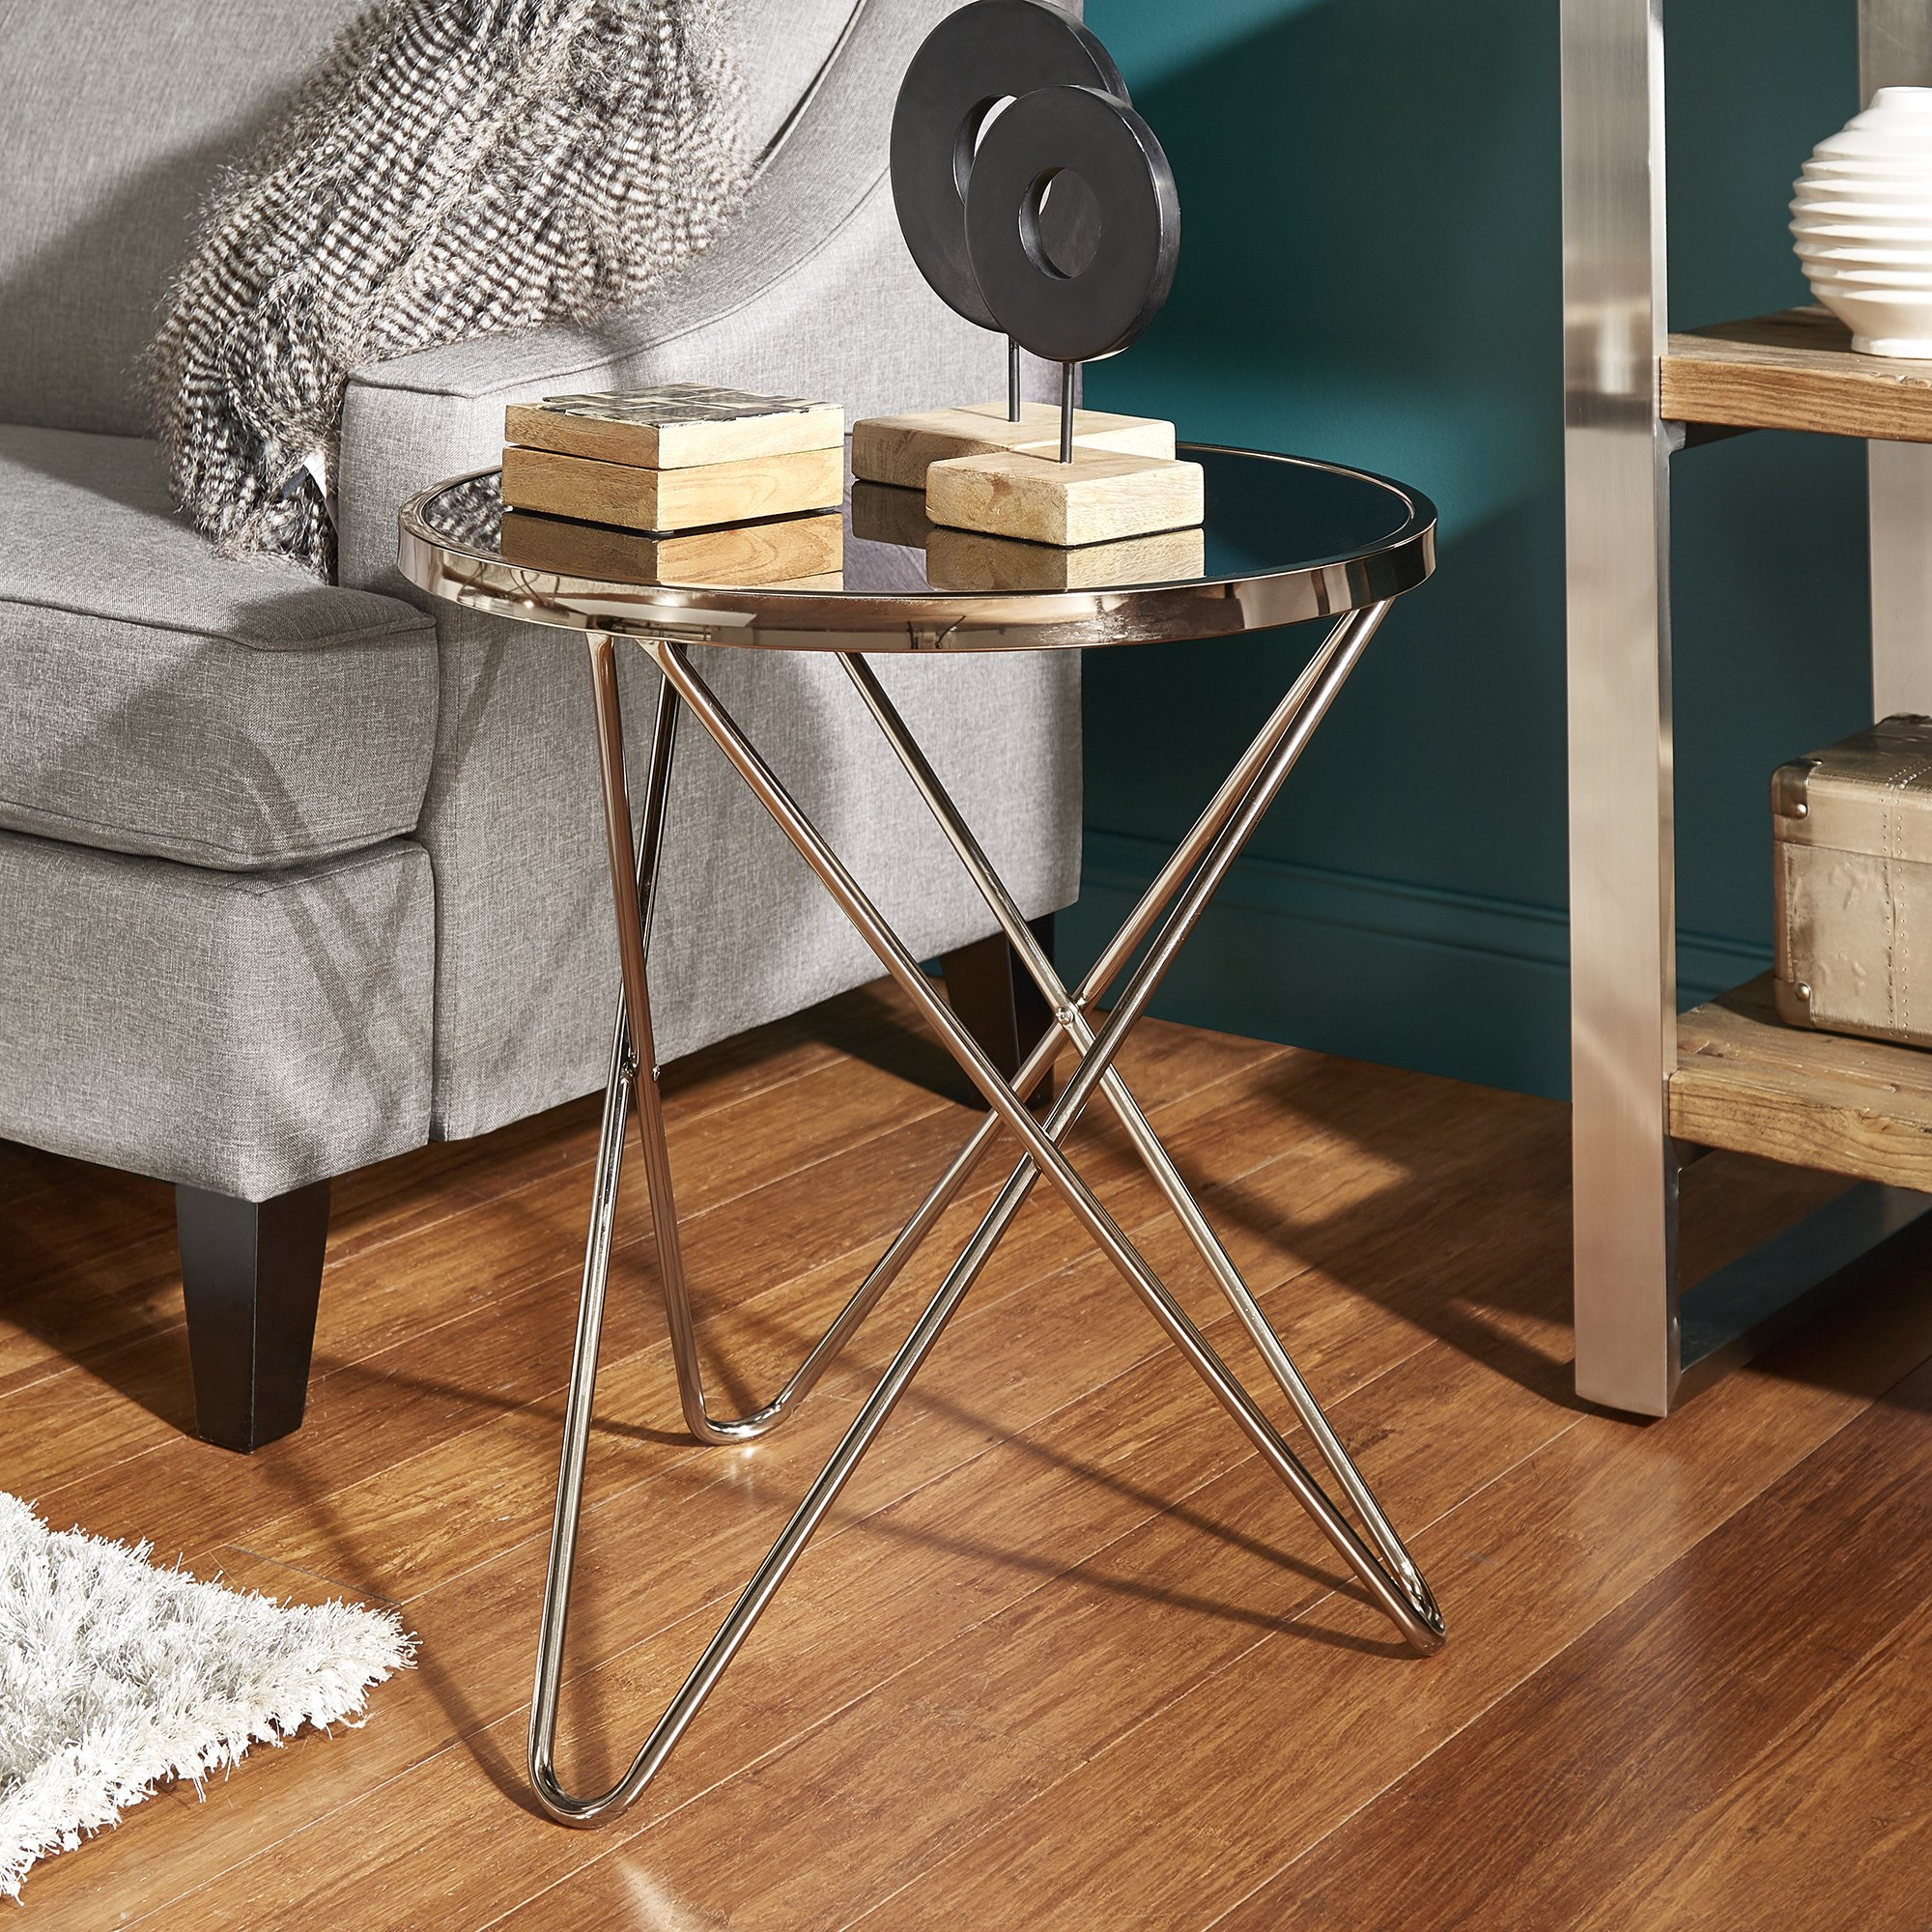 gabe champagne gold finish hairpin leg accent tables with black glass top inspire bold room essentials table free shipping today small side drawers low round coffee ginger jar